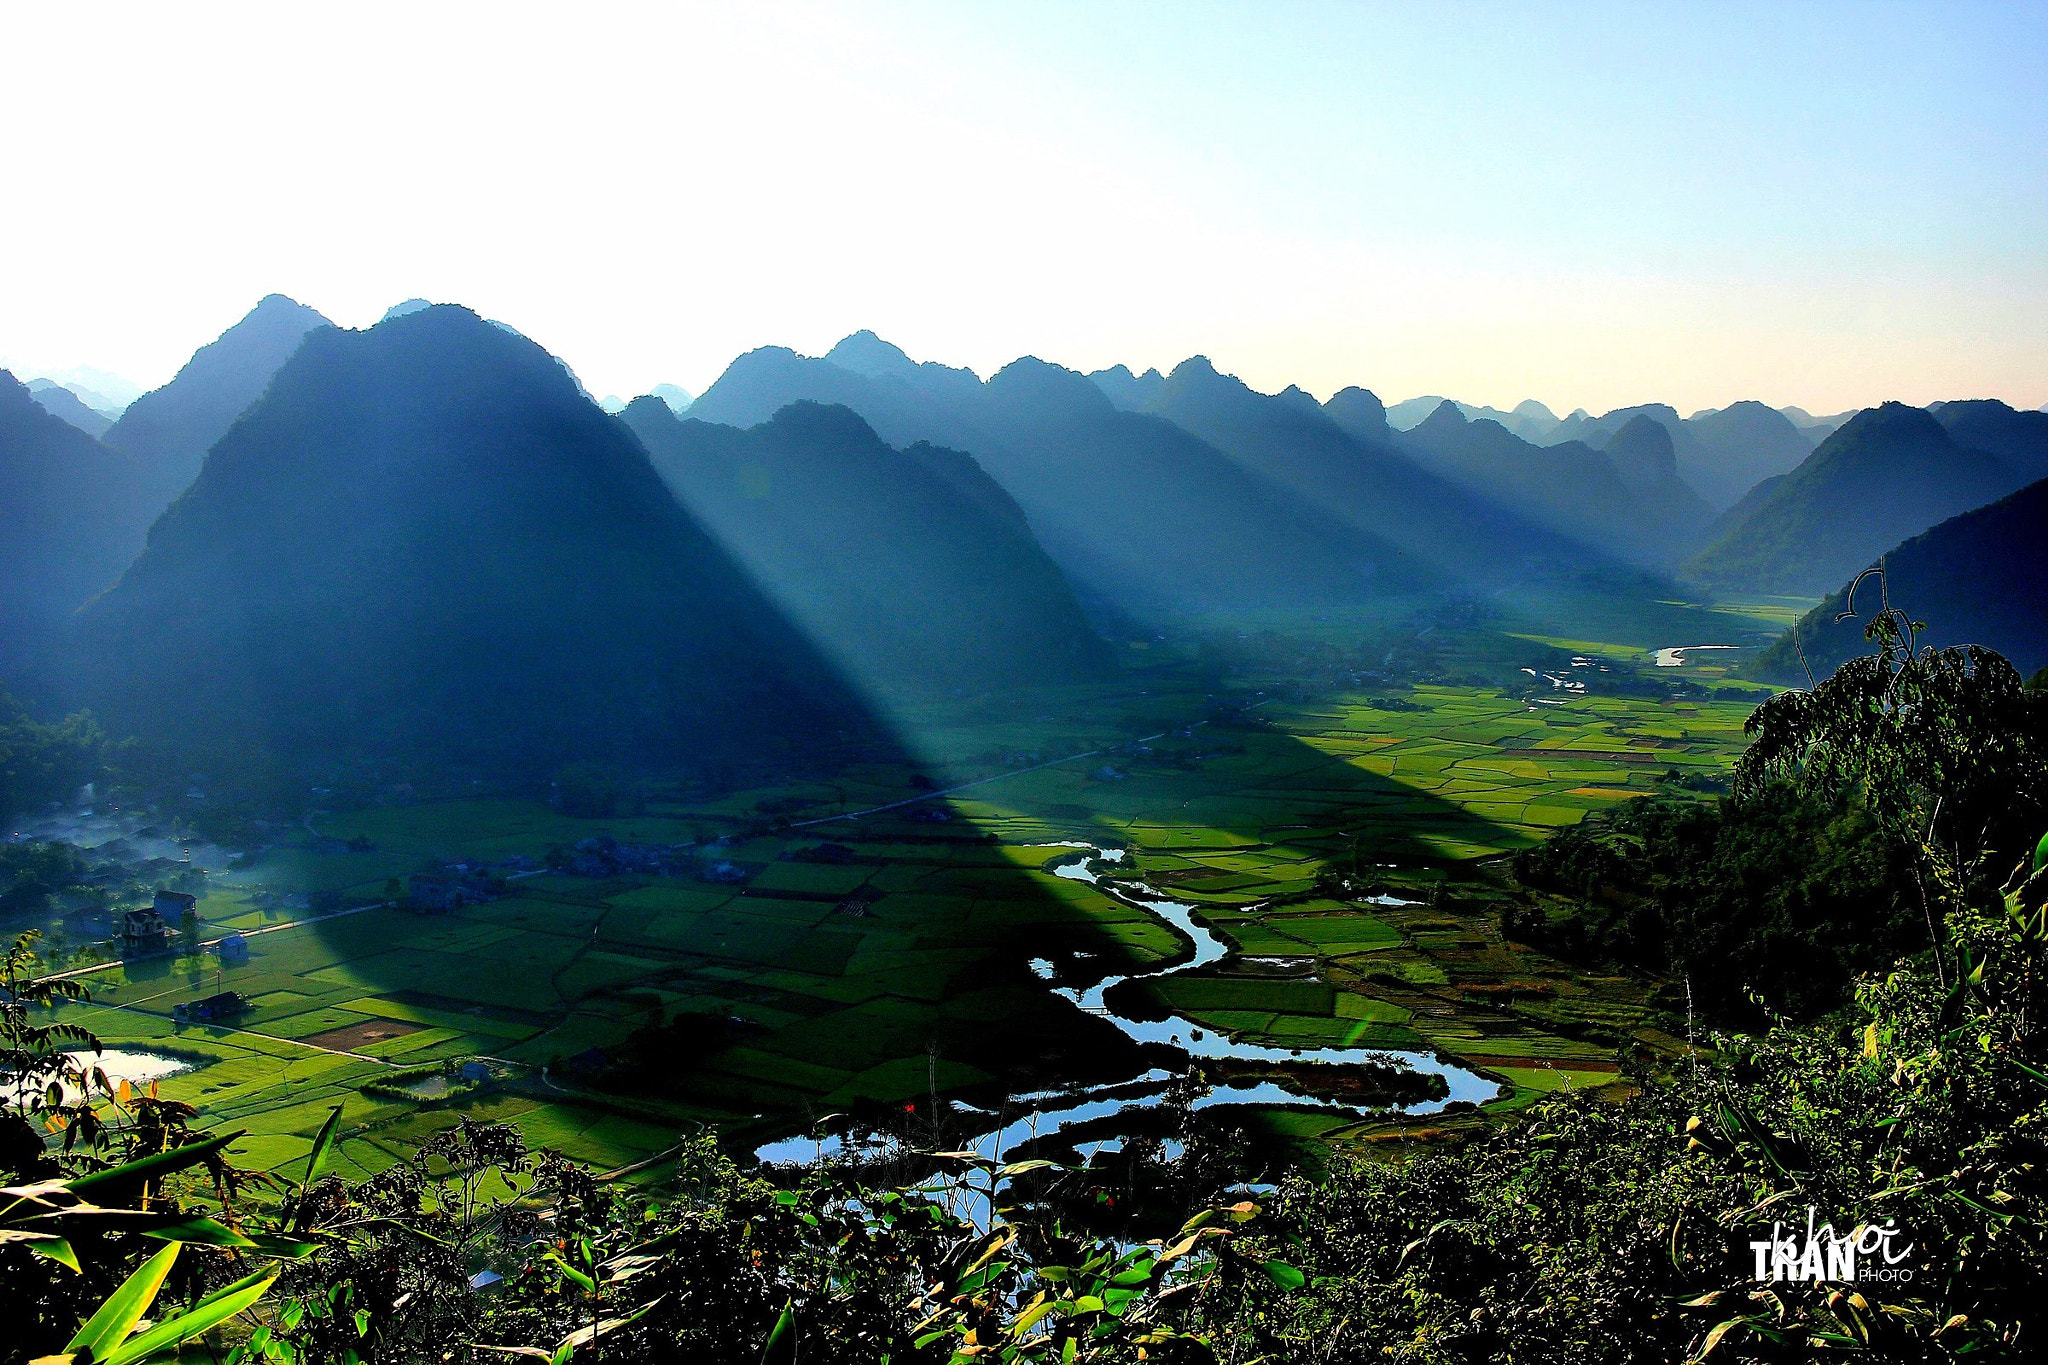 Photograph Sunny early in BacSon Valley by Khoi Tran Duc on 500px